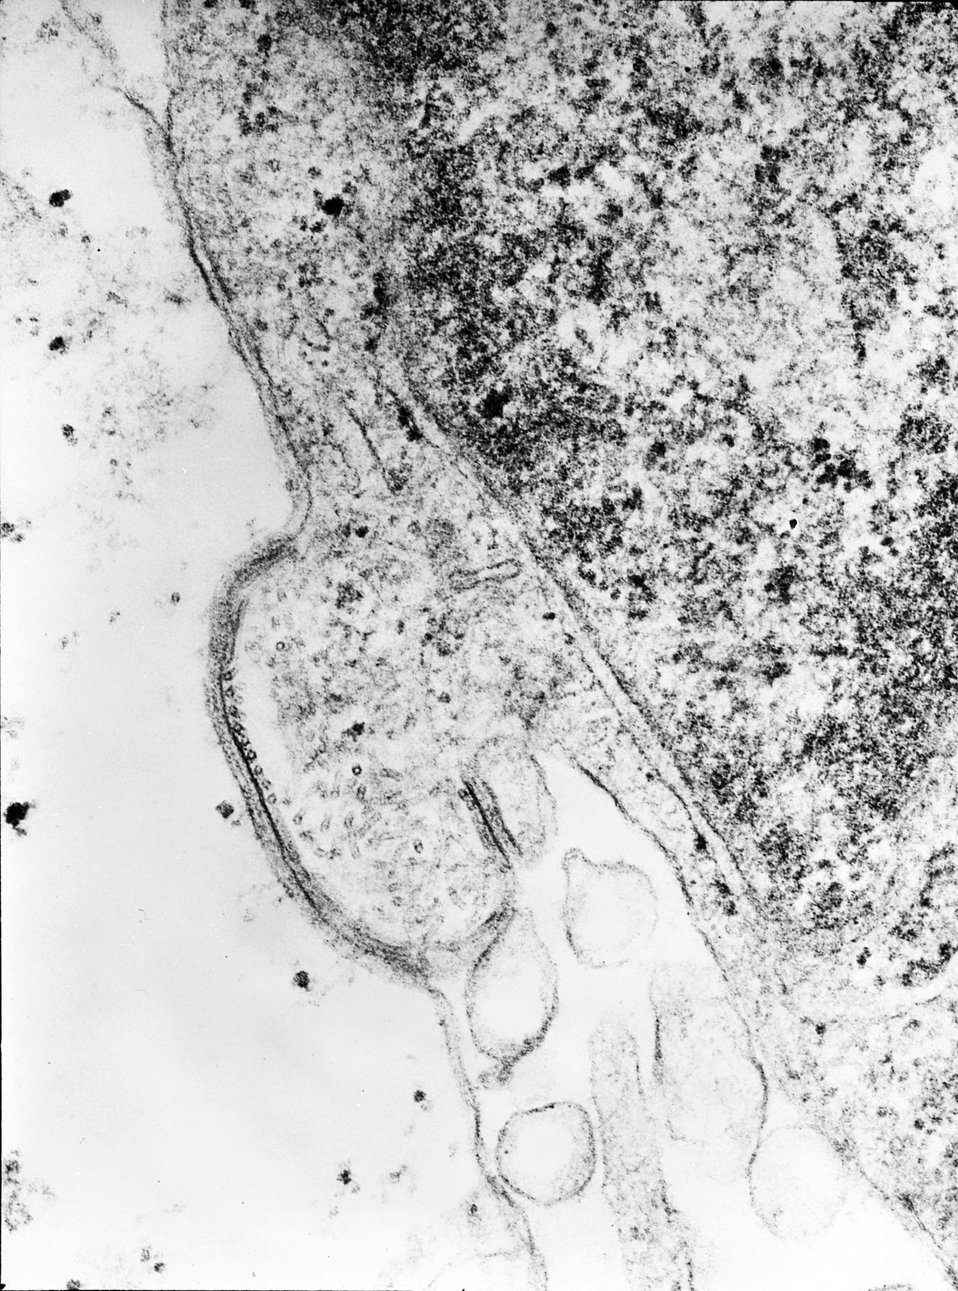 This transmission electron micrograph (TEM) revealed the presence of the human parainfluenza type 4A virus (HPIV-4A), which like the mumps v